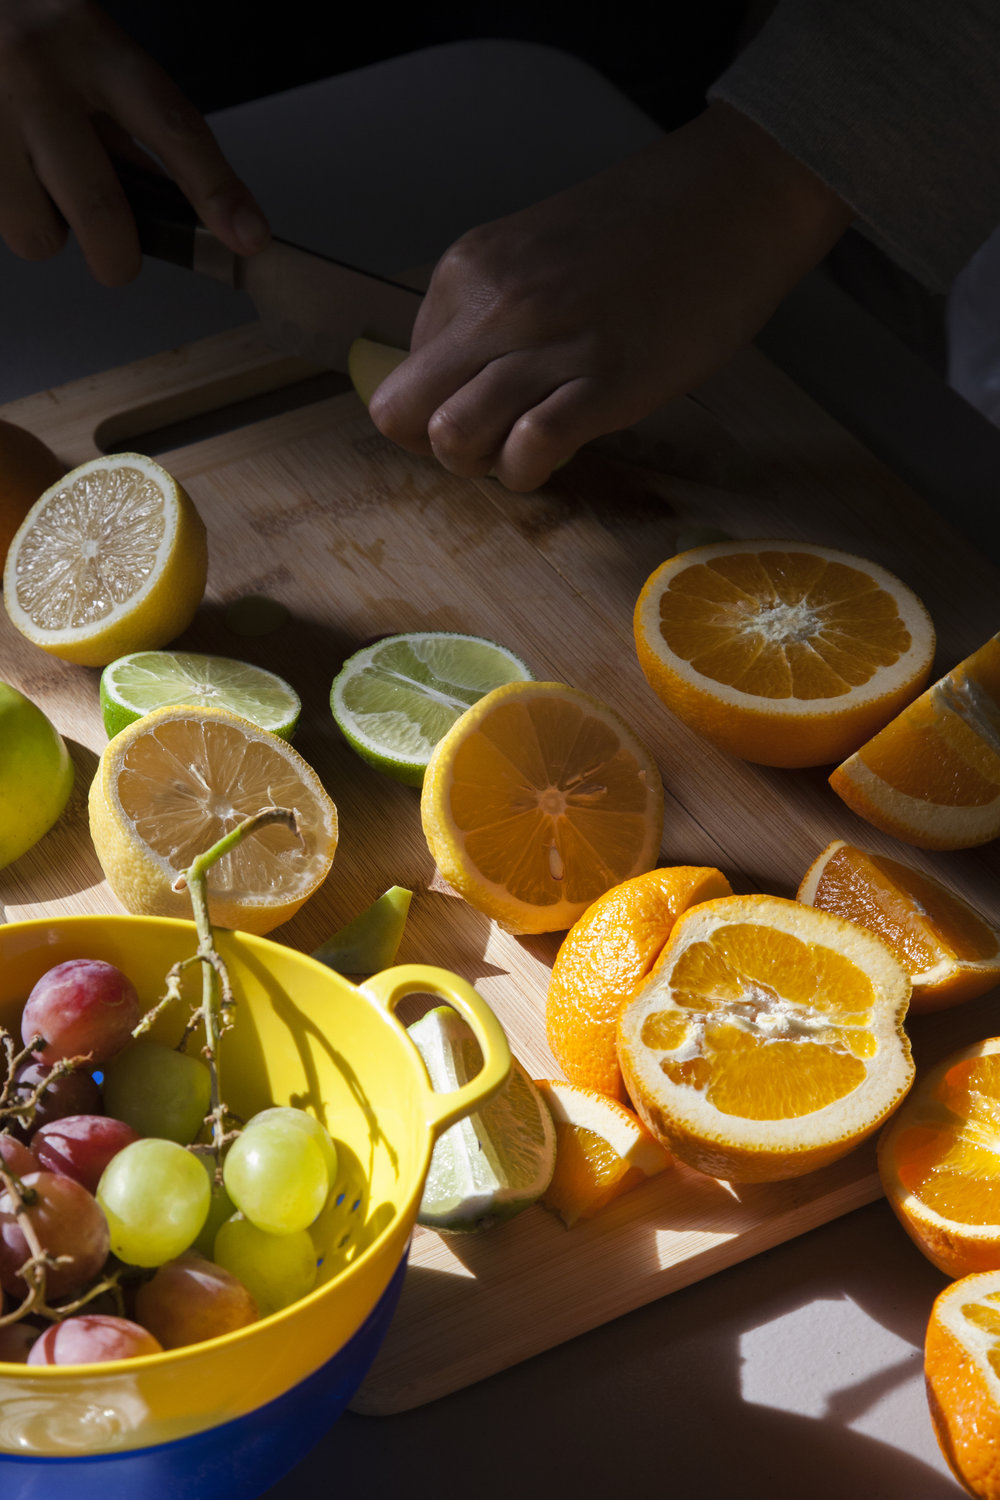 <style> .cincinnati fruit and food photography { display: none } </style>